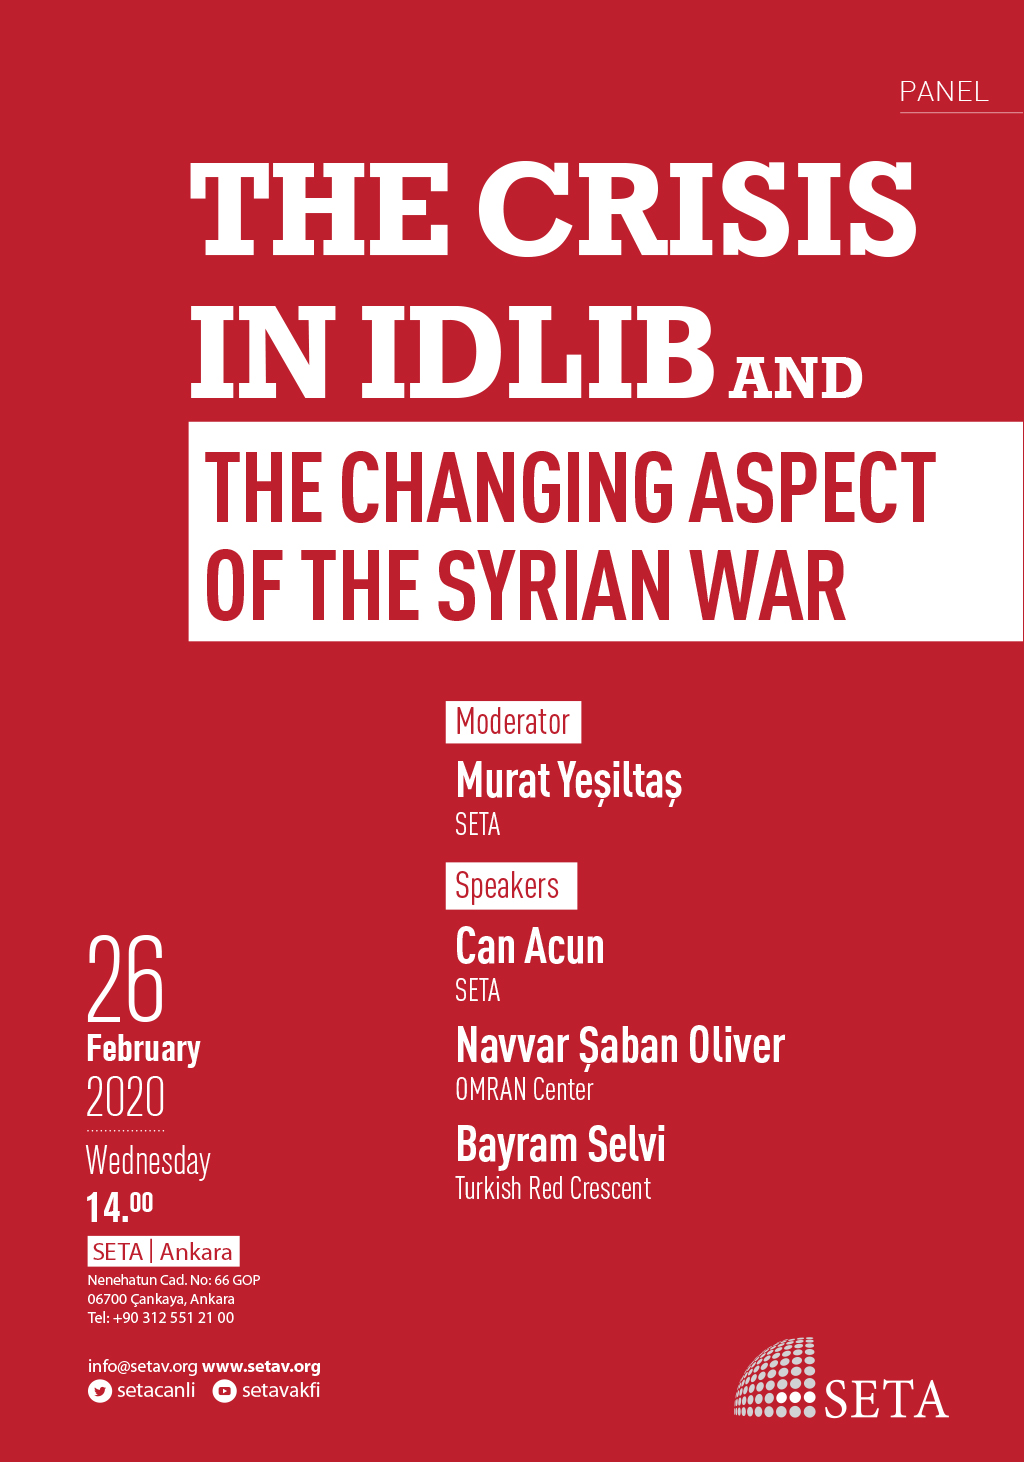 Panel: The Crisis in Idlib and the Changing Aspect of the Syrian War